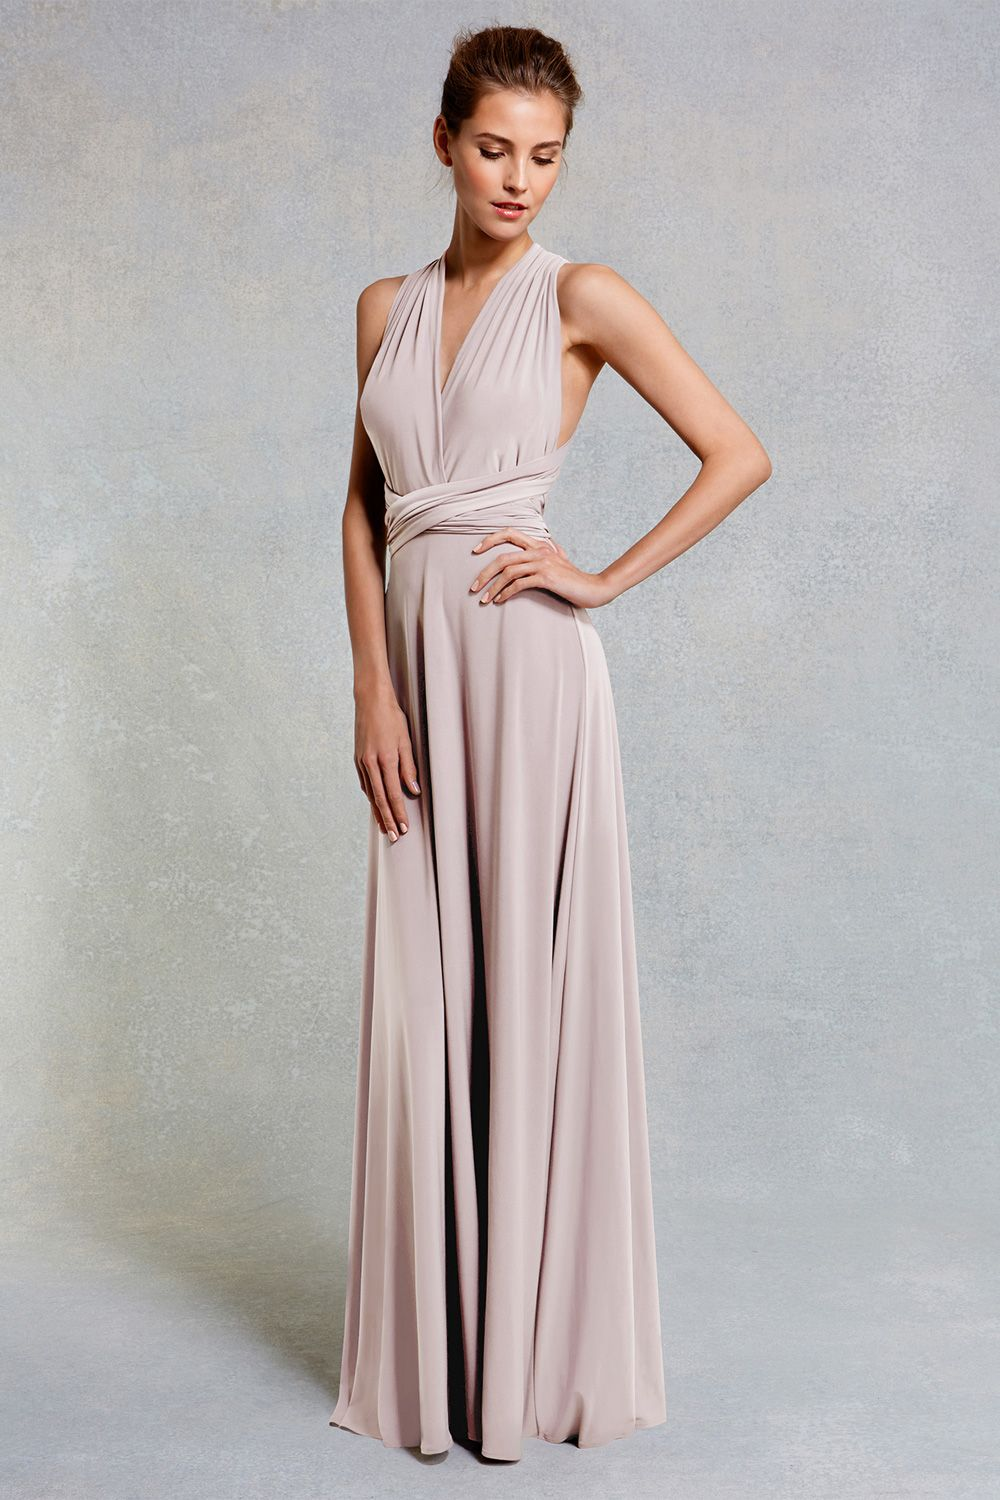 Corwin multi tie dress 2016 bridesmaid collections pinterest corwin multi tie dress bridesmaid ombrellifo Images